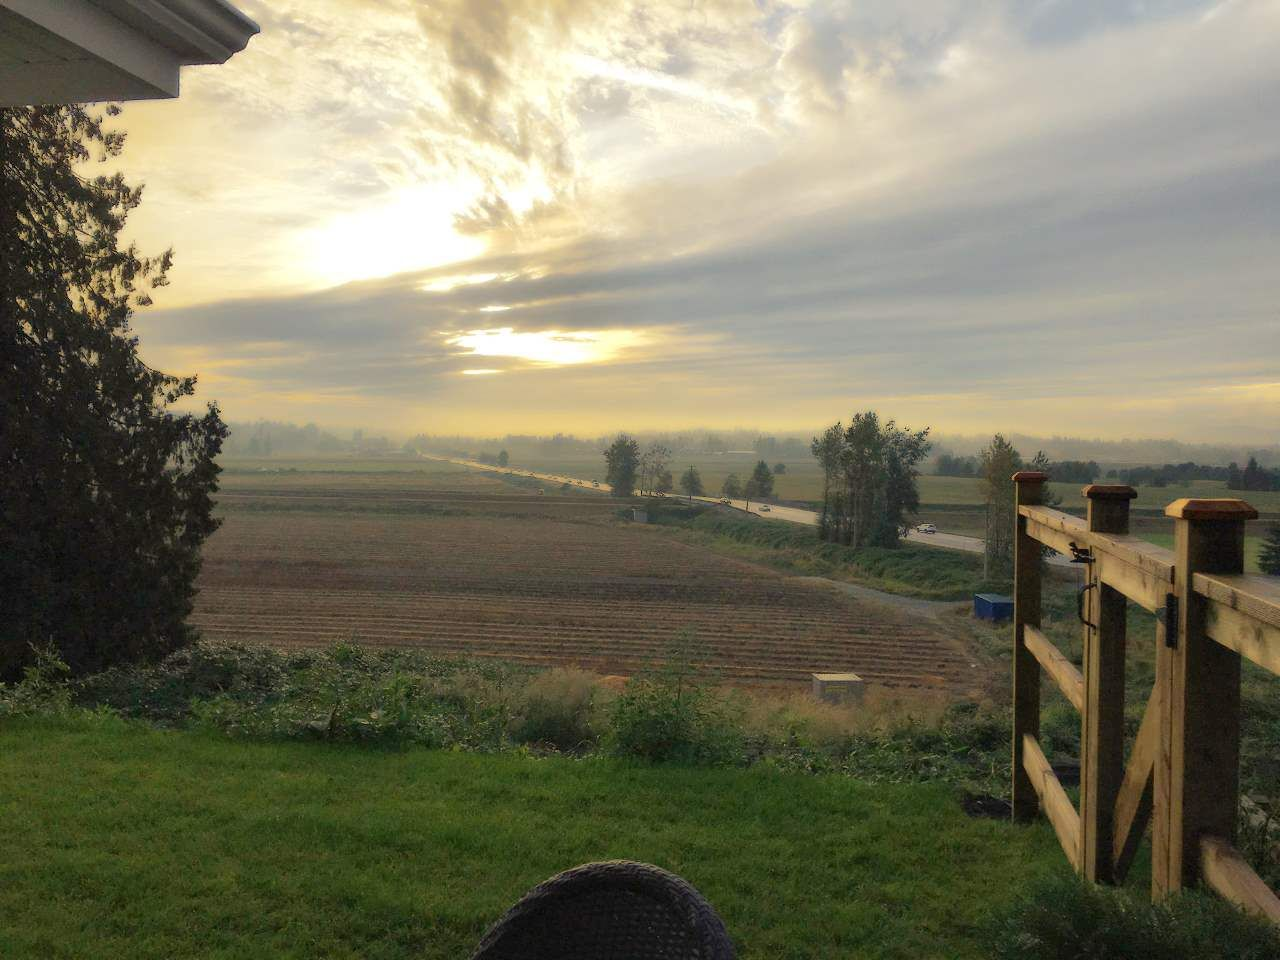 """Main Photo: 211 16380 64 Avenue in Surrey: Cloverdale BC Condo for sale in """"The Ridge at Bose Farm"""" (Cloverdale)  : MLS®# R2545629"""